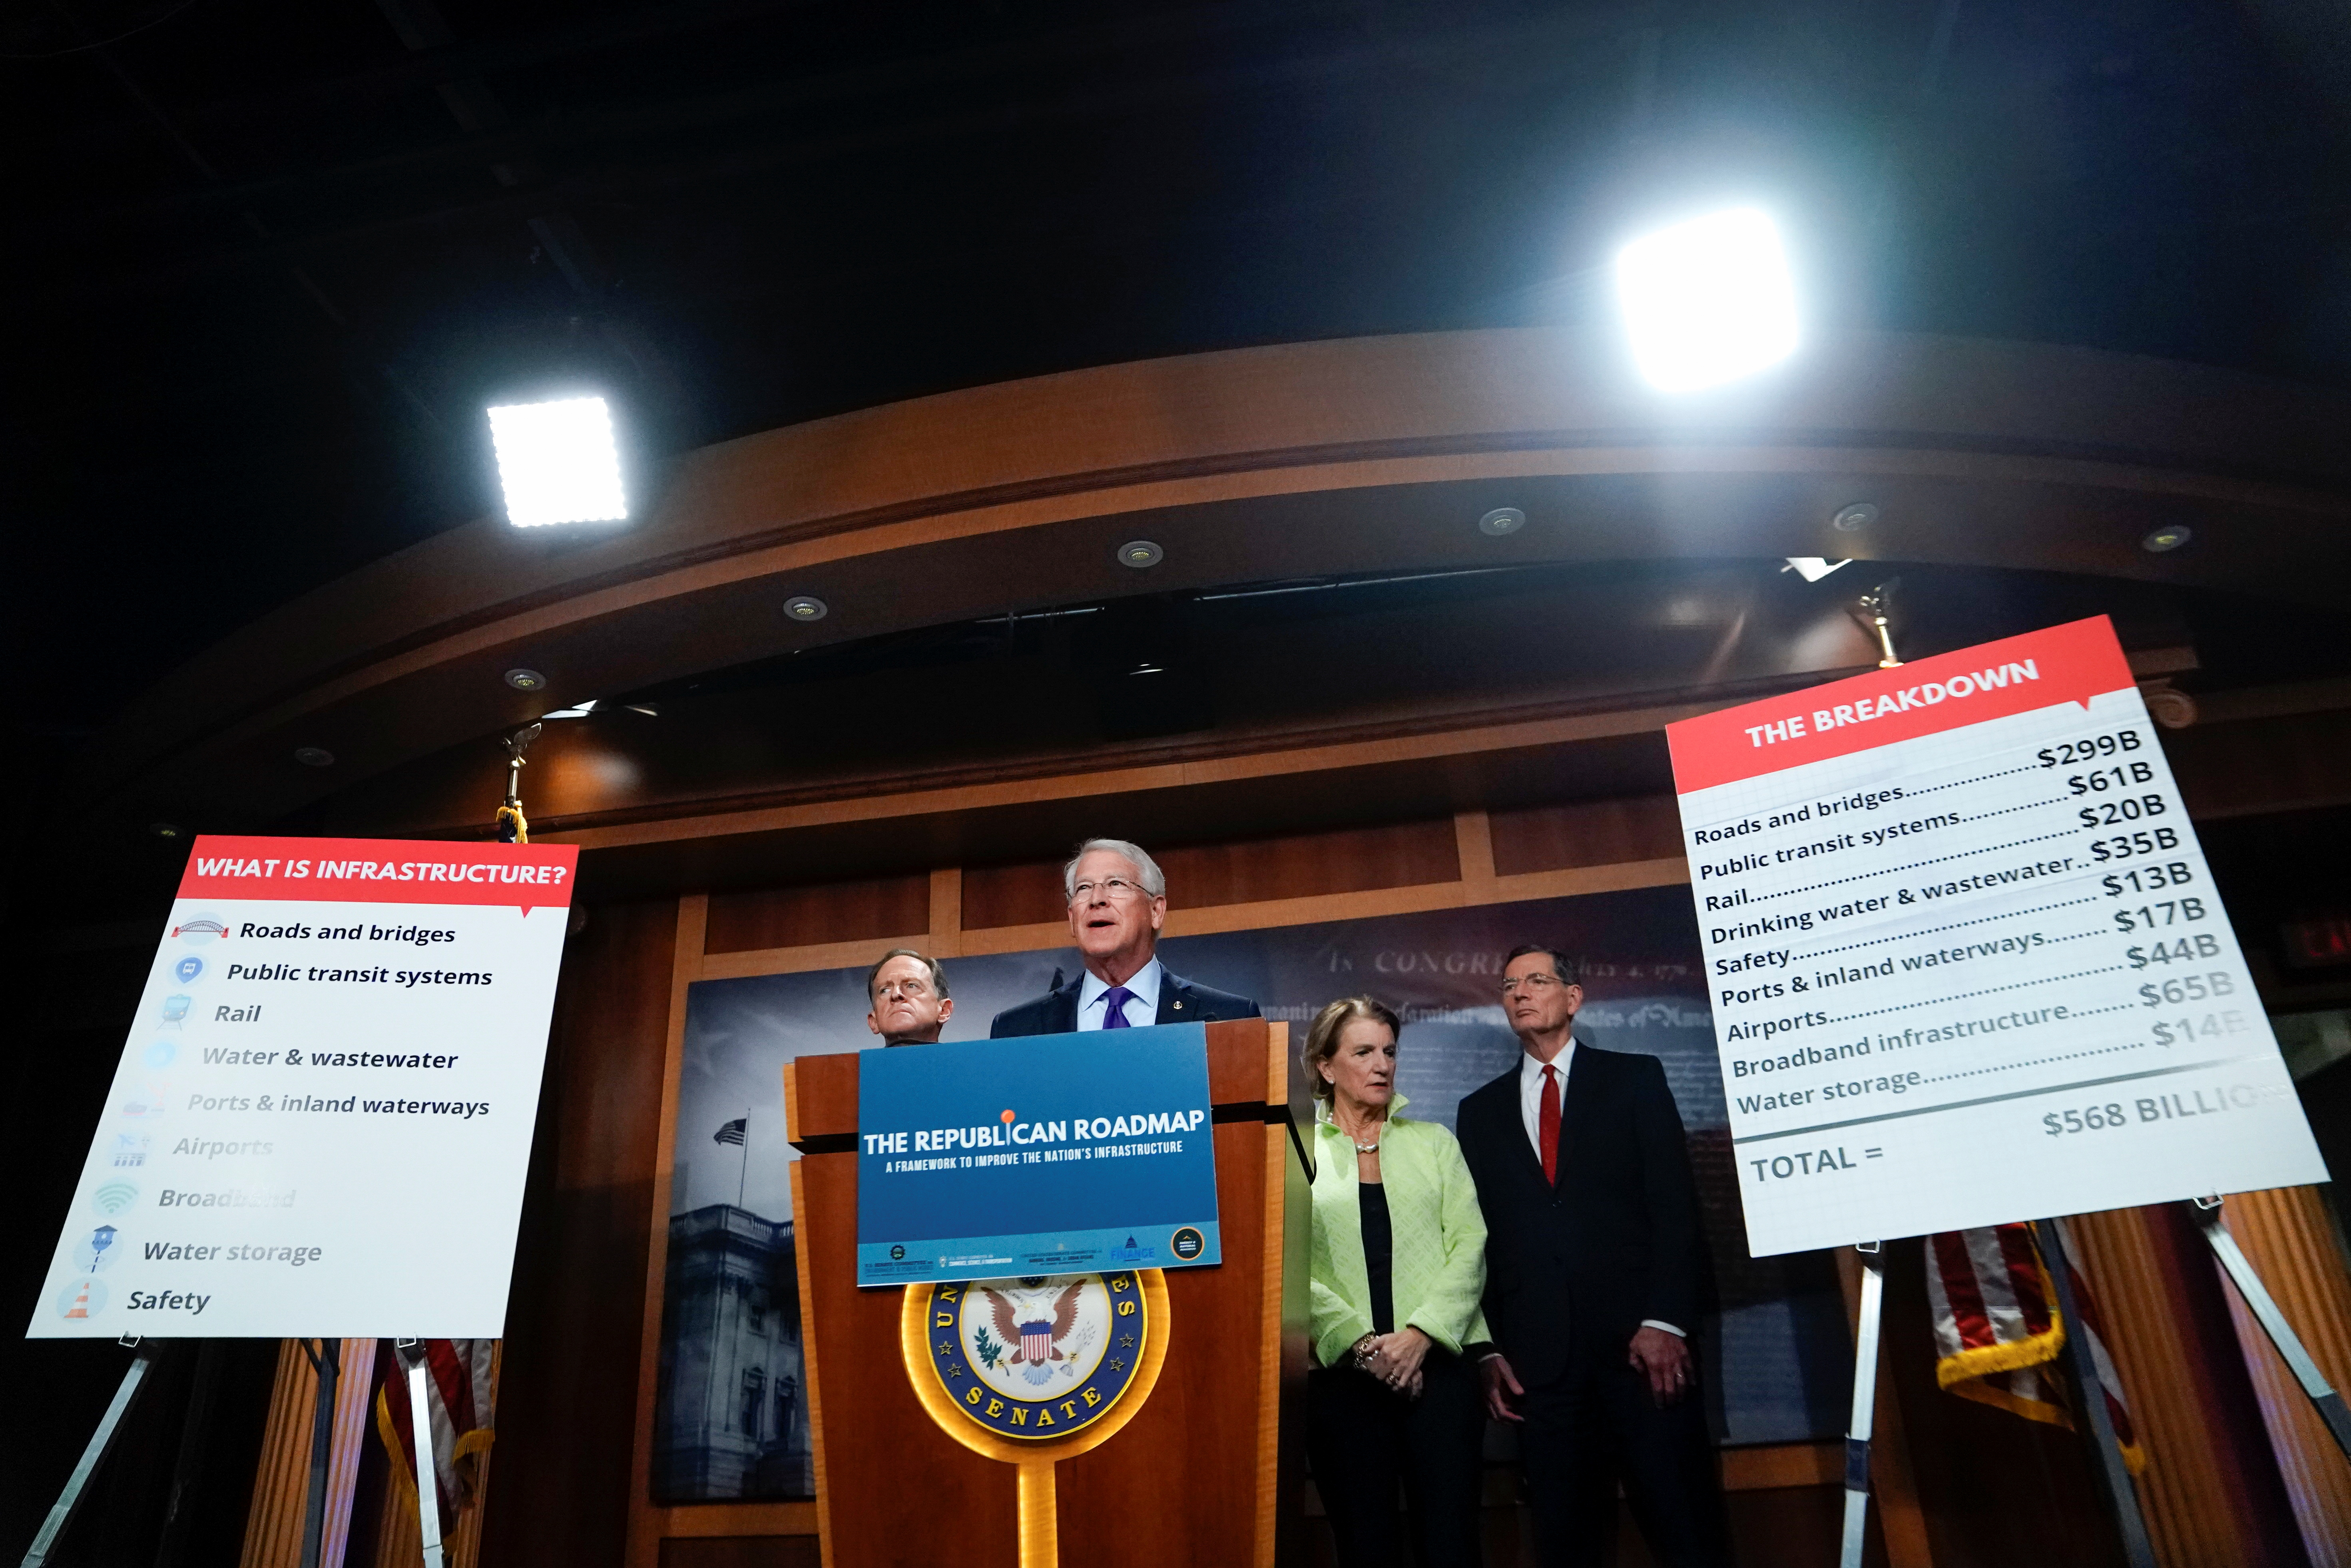 Roger Wicker (R-MS) speaks during a news conference to introduce the Republican infrastructure plan, at the U.S. Capitol in Washington, U.S., April 22, 2021. REUTERS/Erin Scott